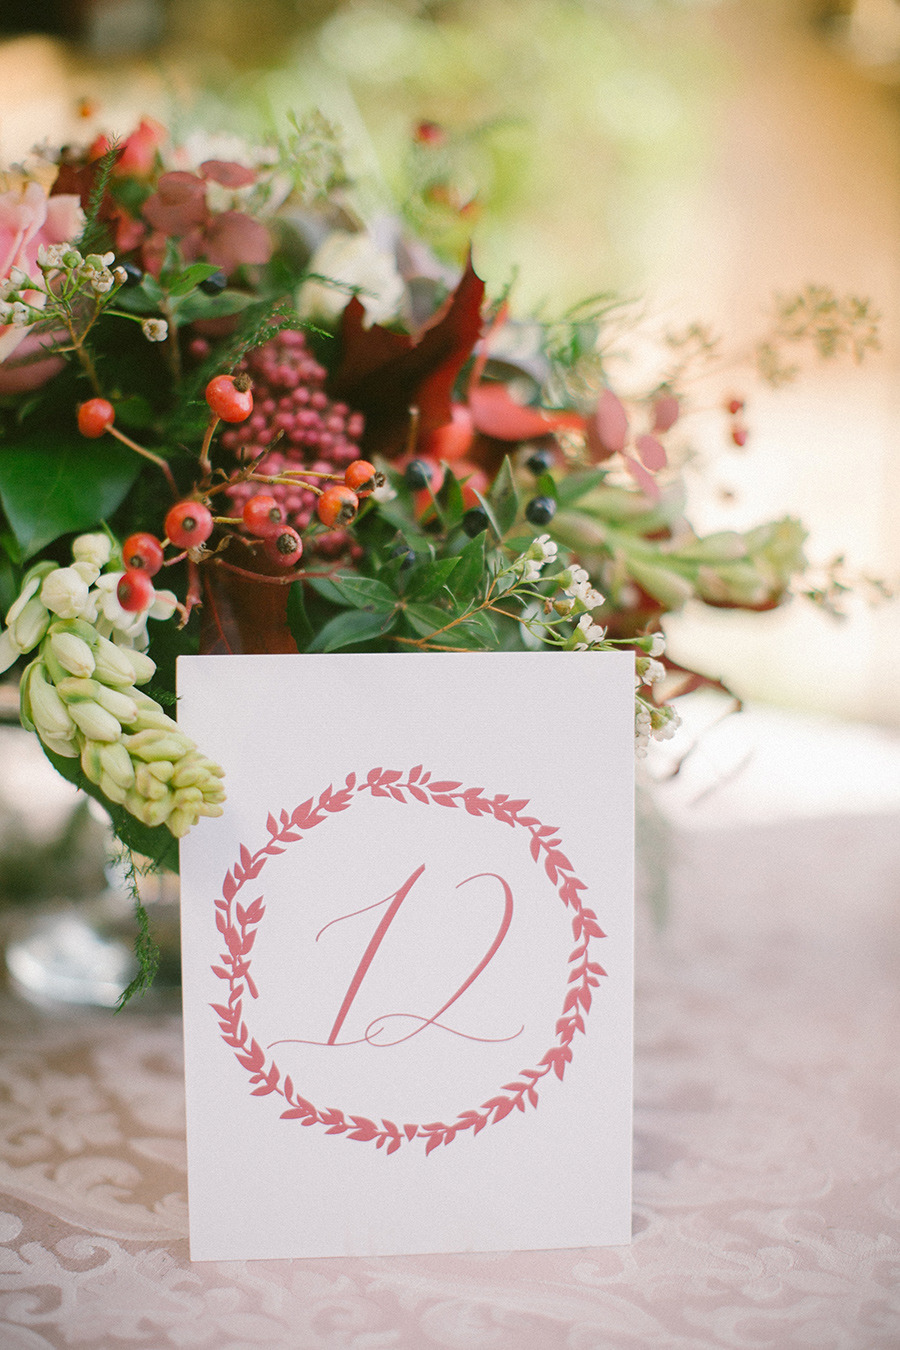 calligraphy wedding table number -Boho Chic Wedding Inspiration Shoot from Anna Roussos Photography - annaroussos.com | Read more : https://www.fabmood.com/boho-chic-wedding-inspiration-shoot-anna-roussos-photography